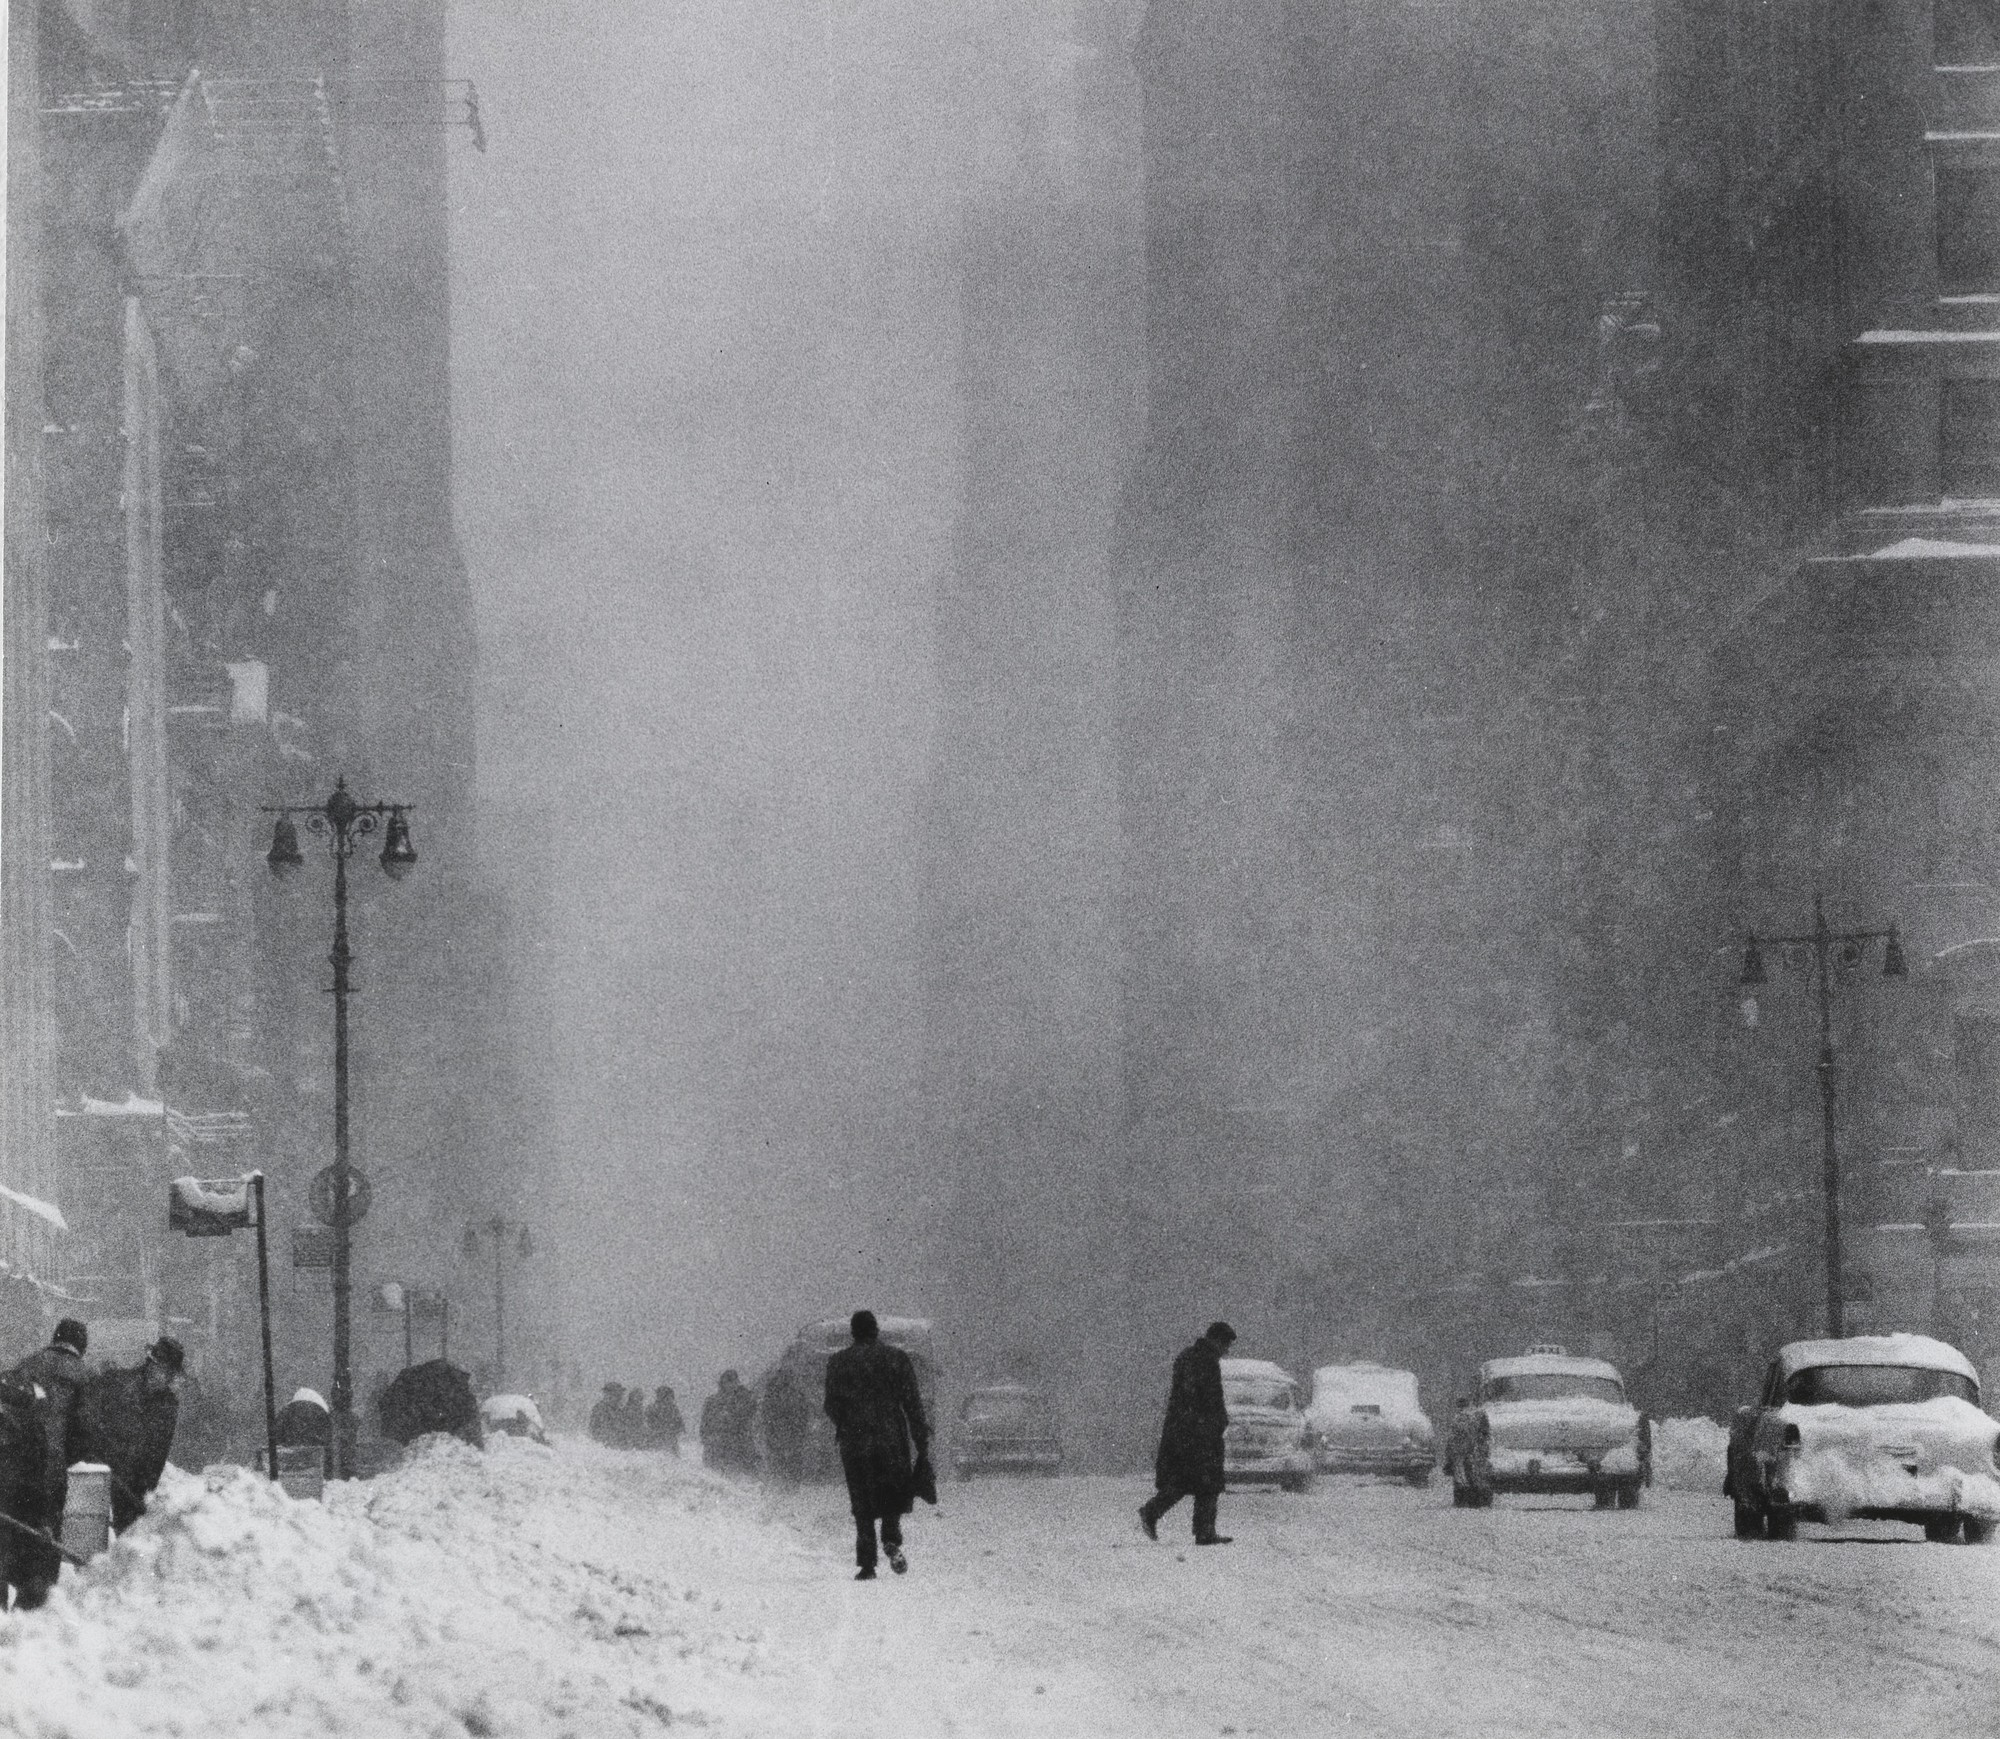 Big snow, 42nd St. NYC, 1956